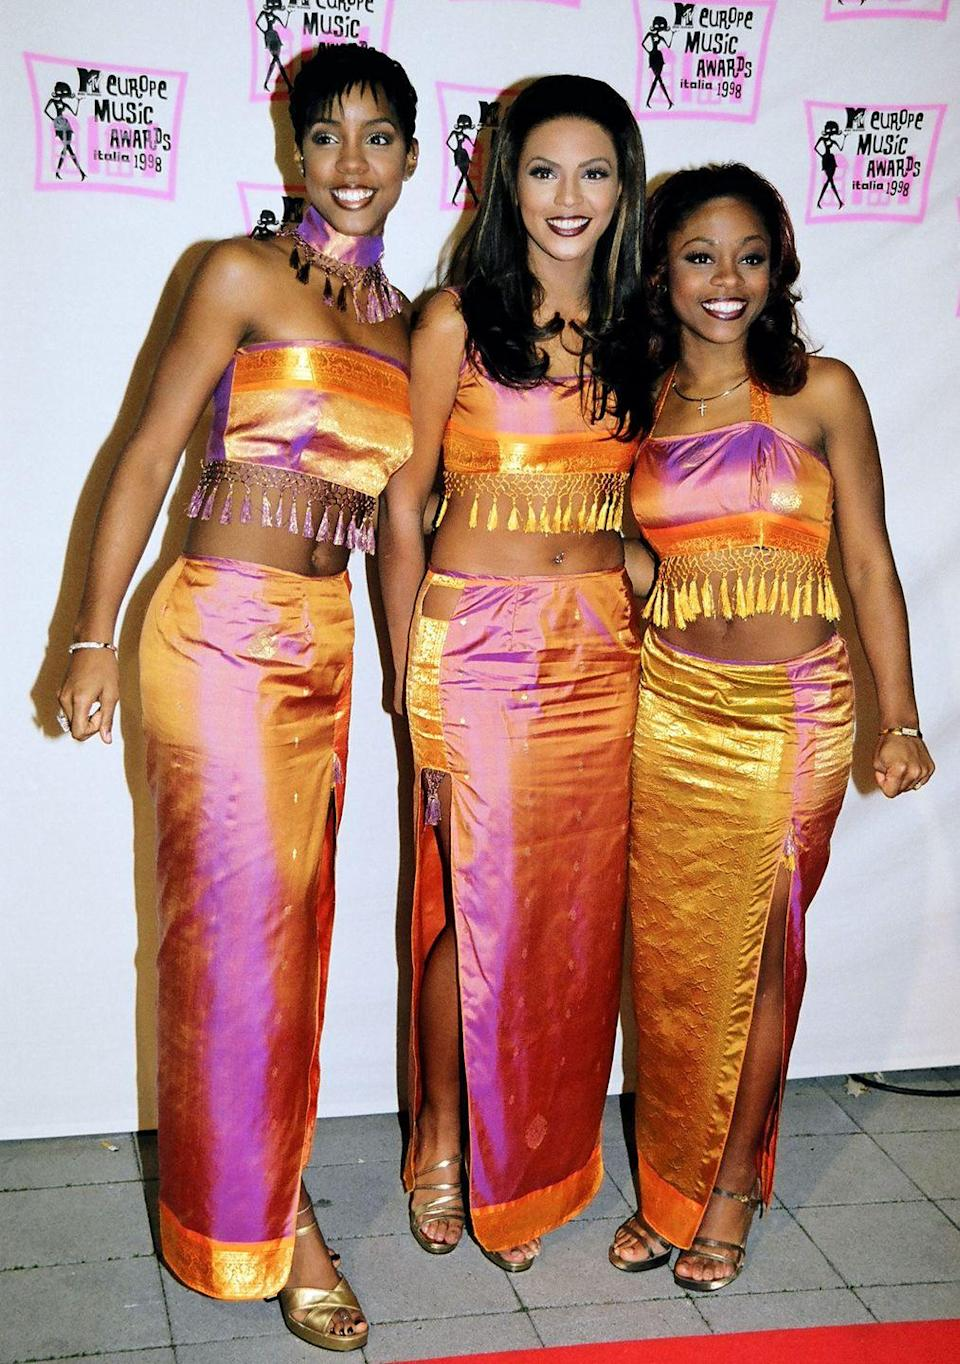 <p>At the European Music Awards, the girl group (pre–Michelle Williams) coordinated in ombré pink-and-orange two-pieces. Clearly, fringed crop tops and maxi skirts were very much A Thing. </p>